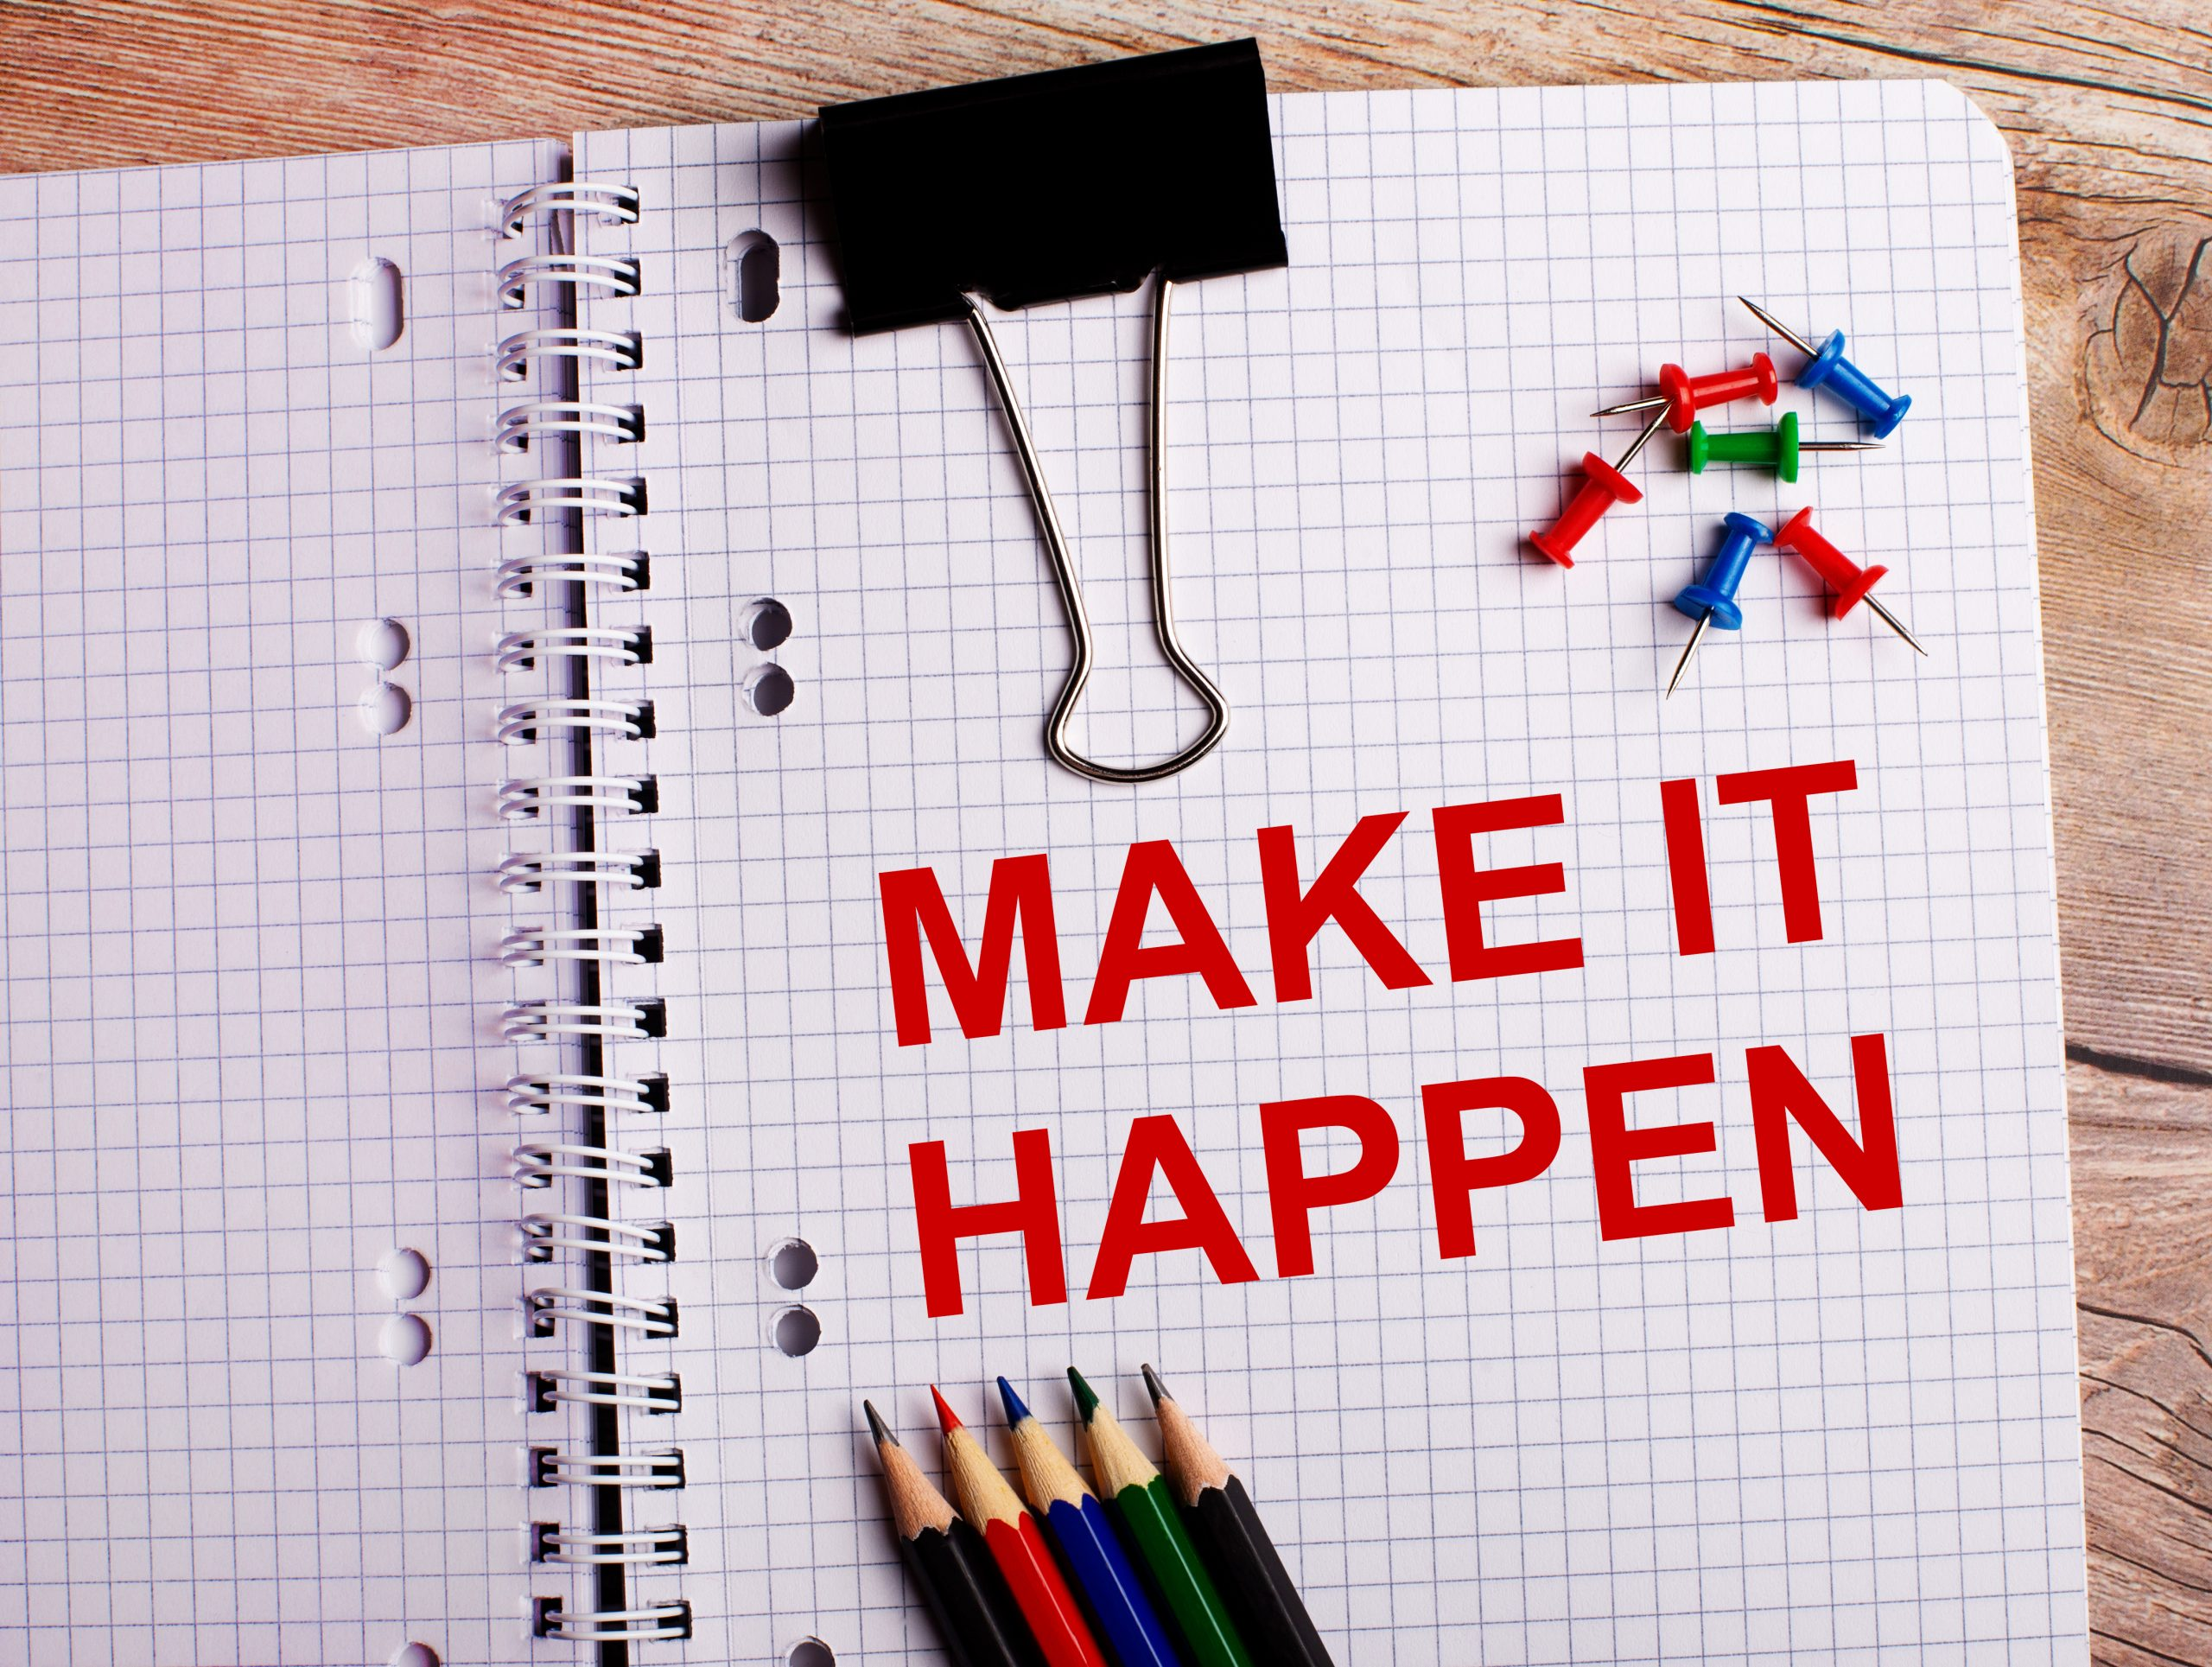 The words MAKE IT HAPPEN is written in a notebook near multi-colored pencils and buttons on a wooden background.